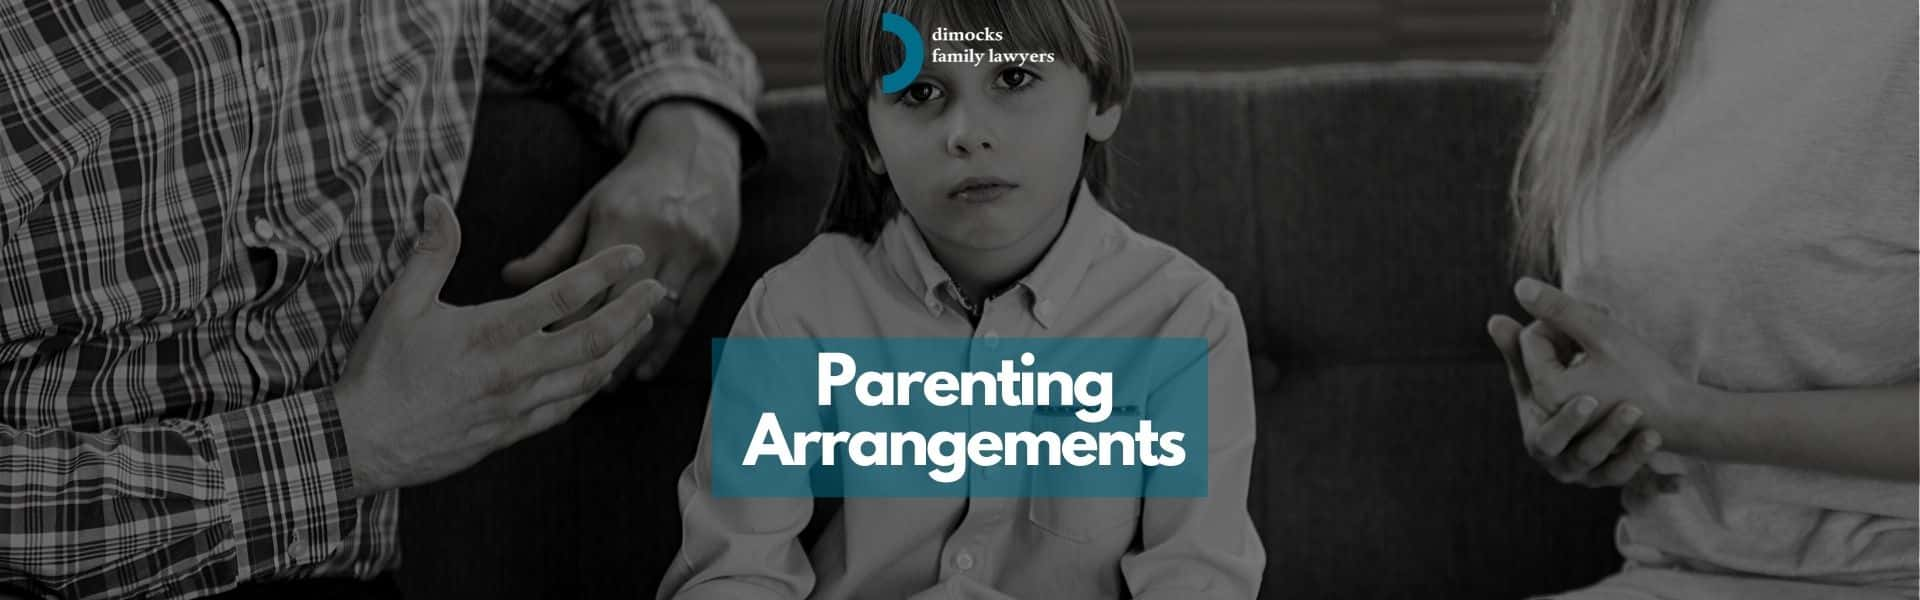 Parenting Arrangement Family Divorce Lawyers Sydney